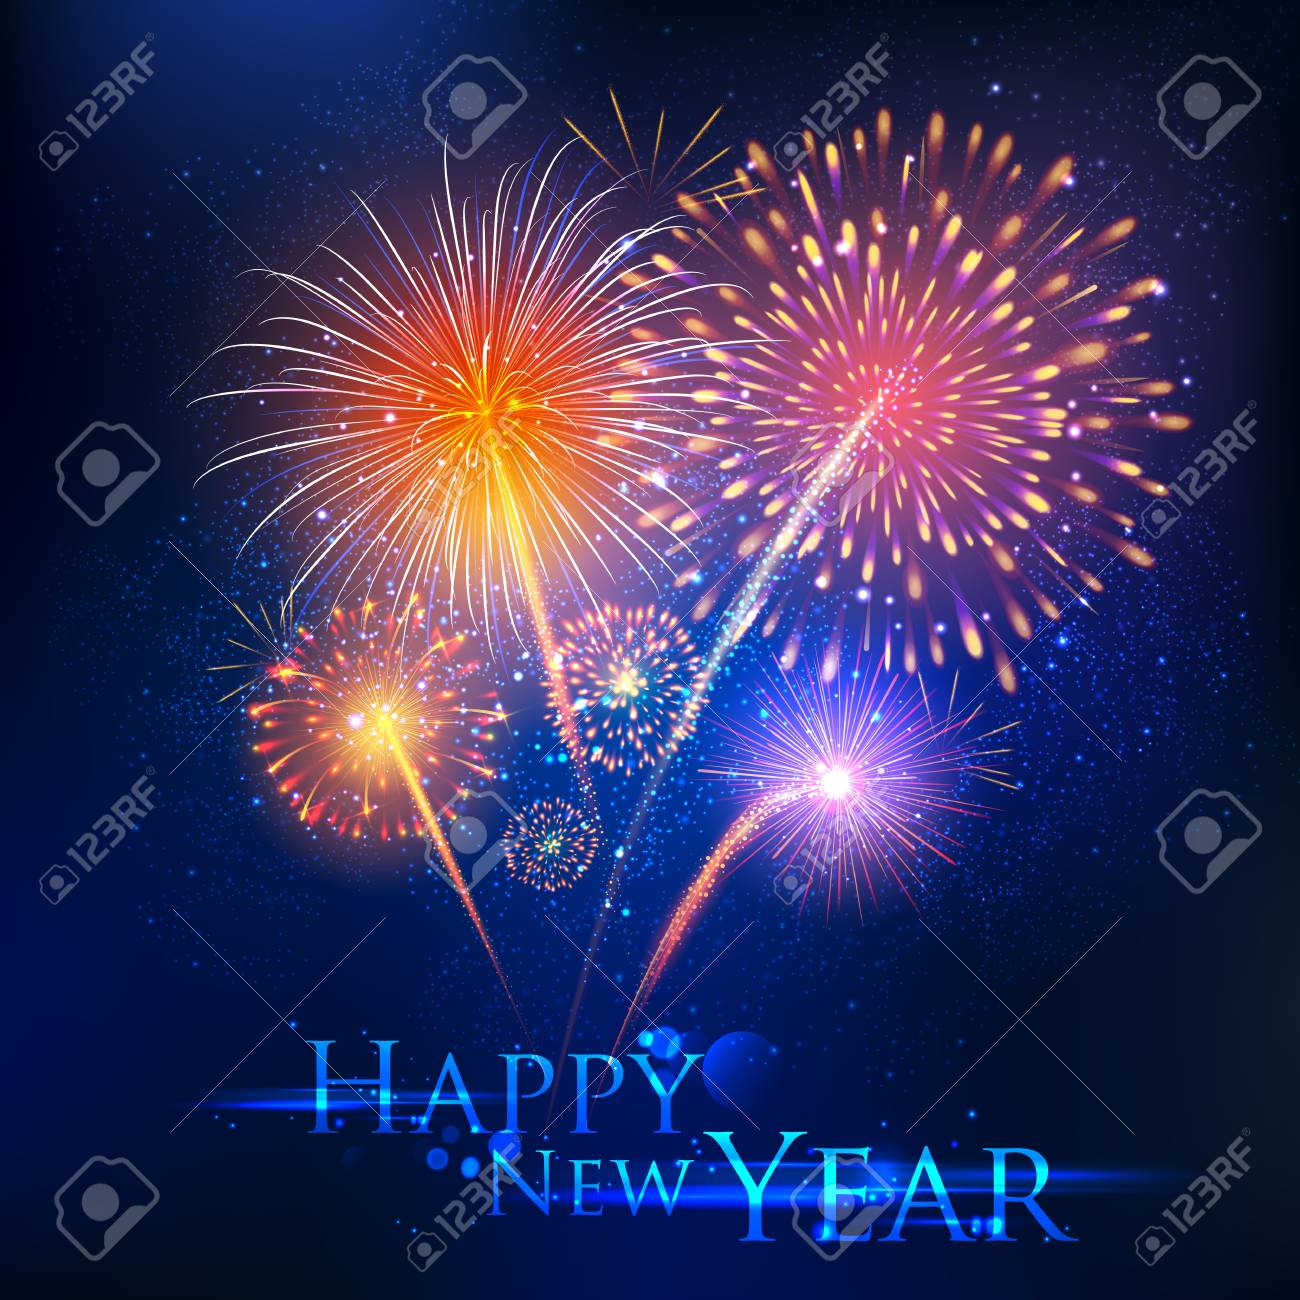 Illustration of happy new year celebration abstract starburst illustration of happy new year celebration abstract starburst seasons greetings background with firework stock vector m4hsunfo